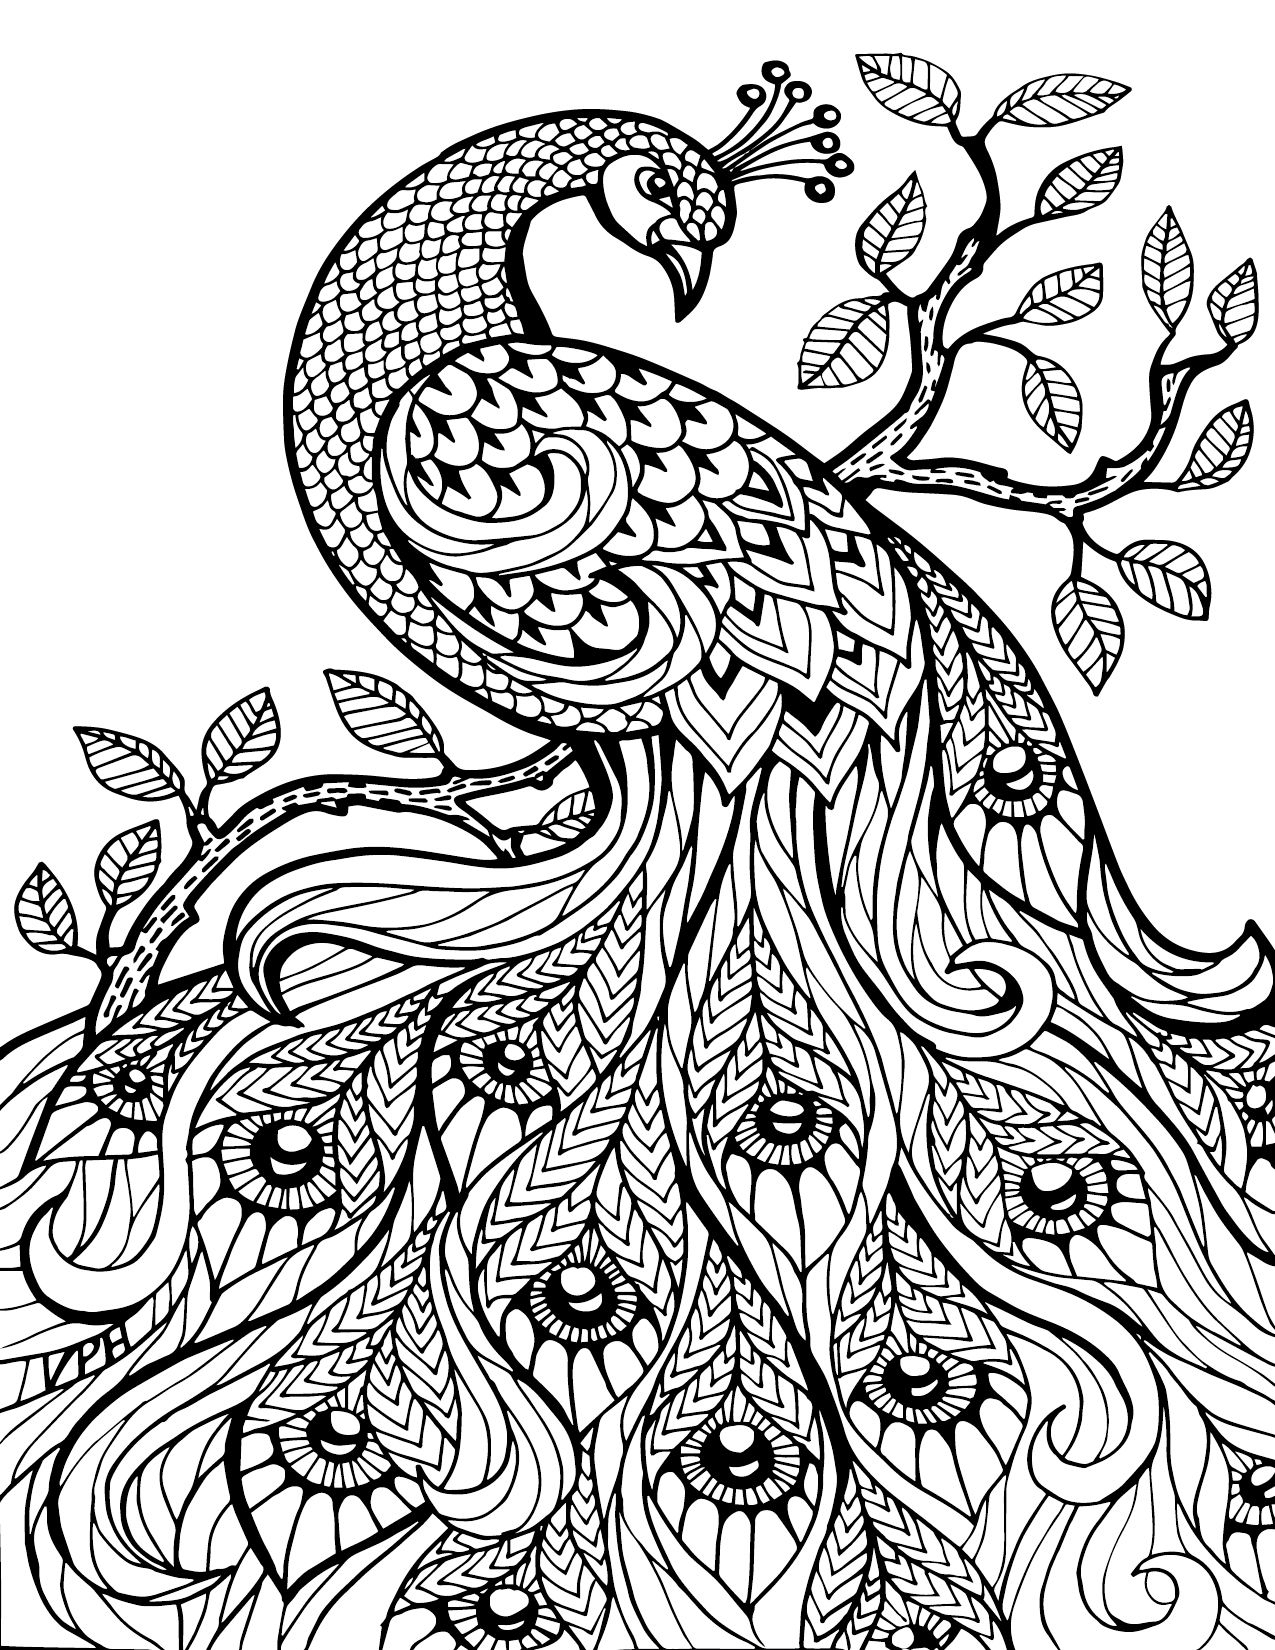 Free Printable Coloring Pages For Adults Only Image 36 Art - Free Printable Coloring Pages For Adults